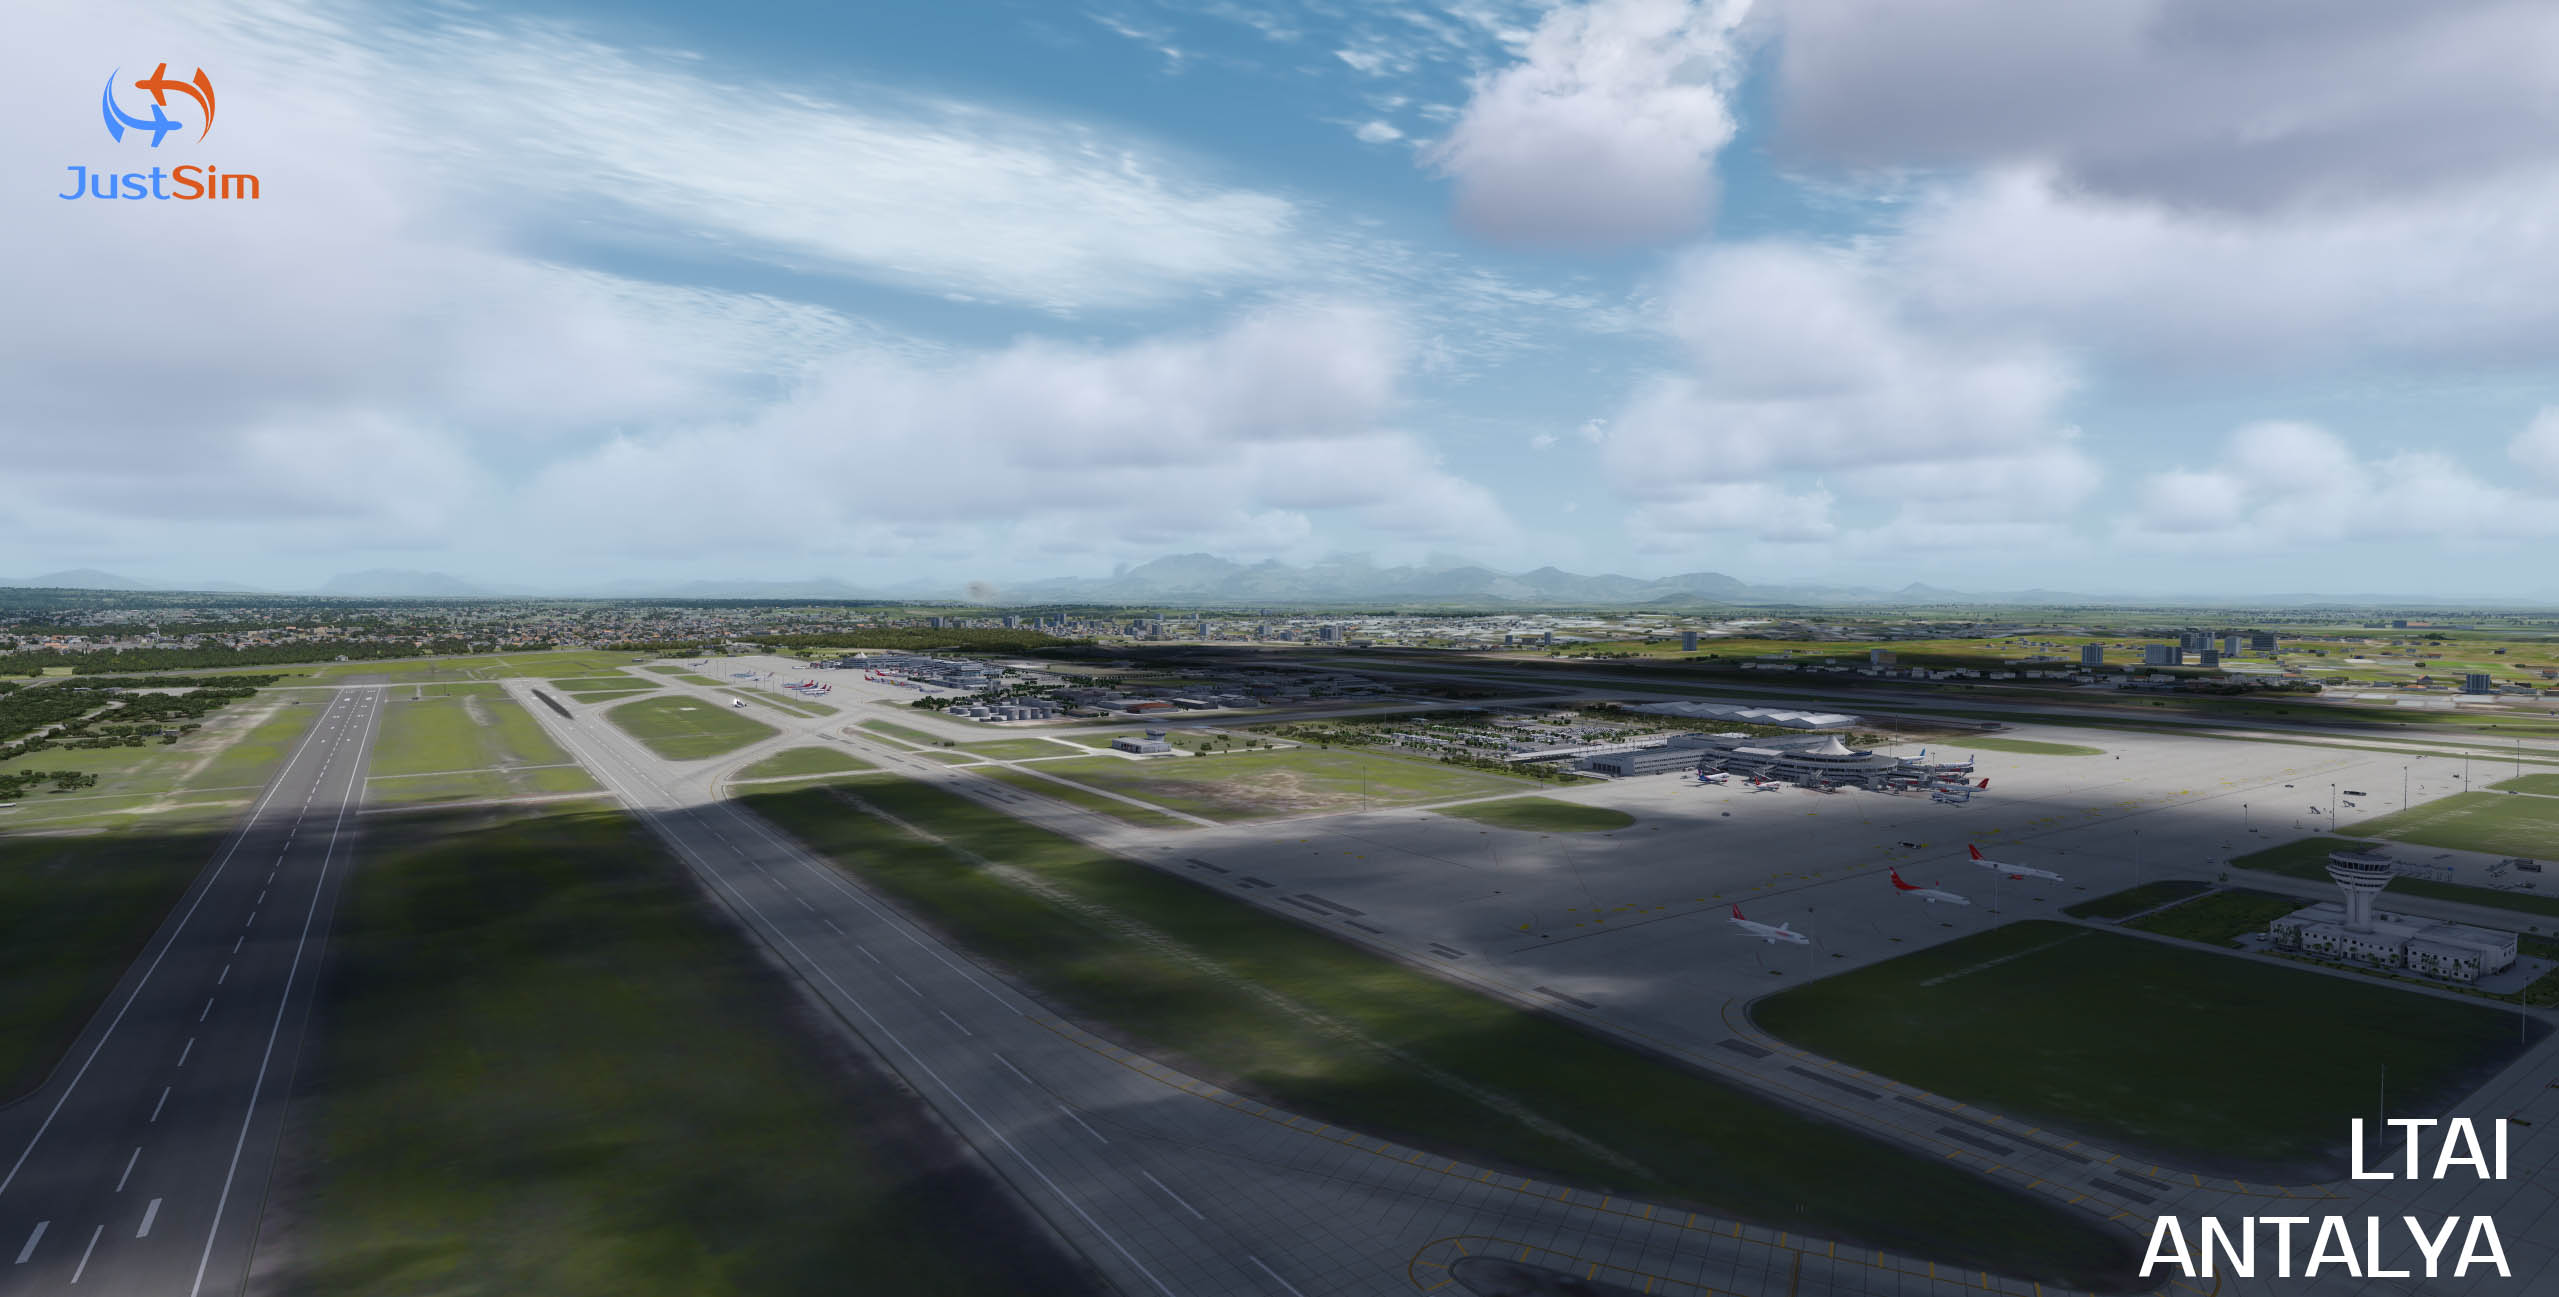 JUSTSIM - ANTALYA INTERNATIONAL AIRPORT LTAI V1.2 P3D4